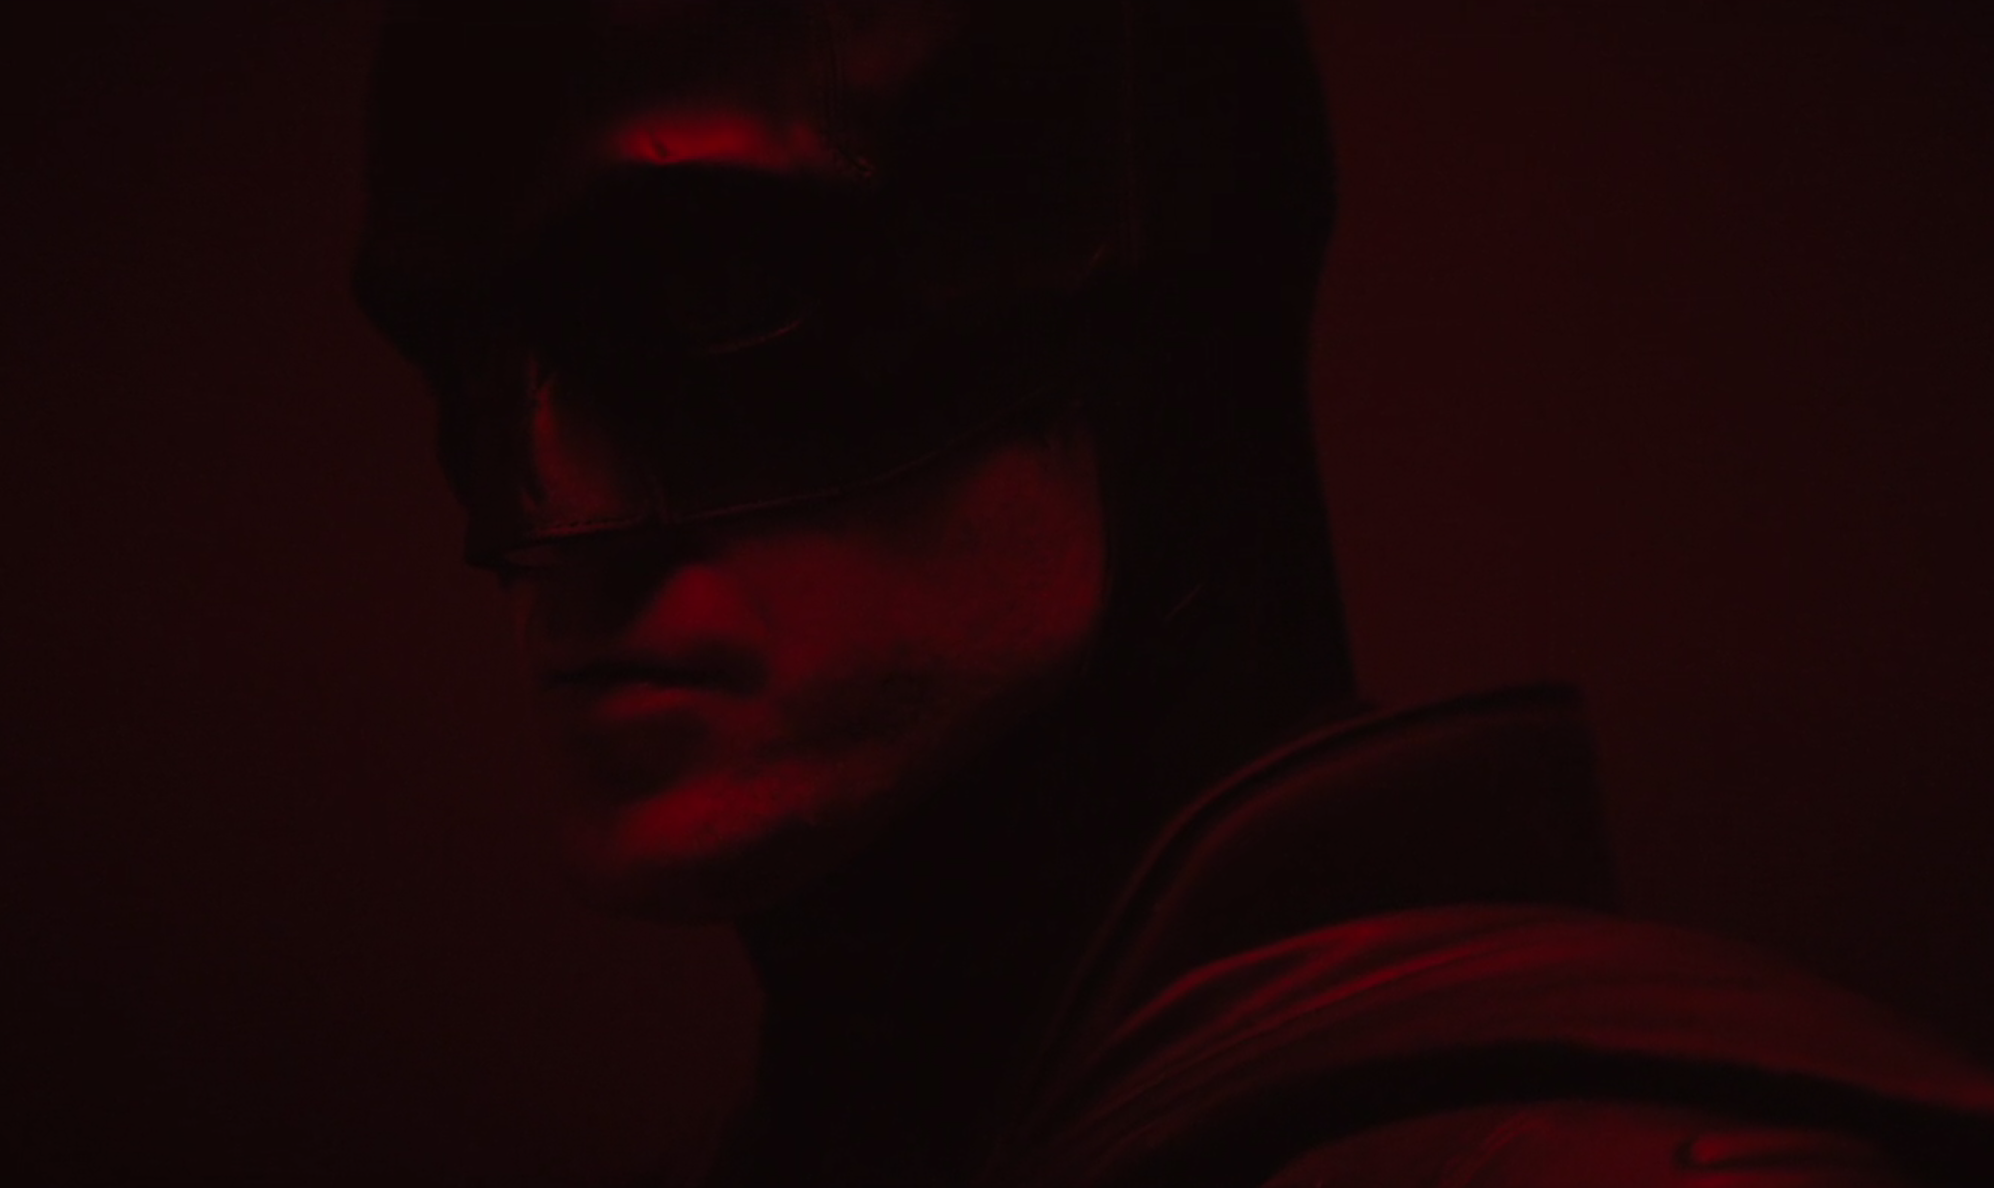 'The Batman' Camera Test Reveals First Glimpse of Robert Pattinson in Batsuit